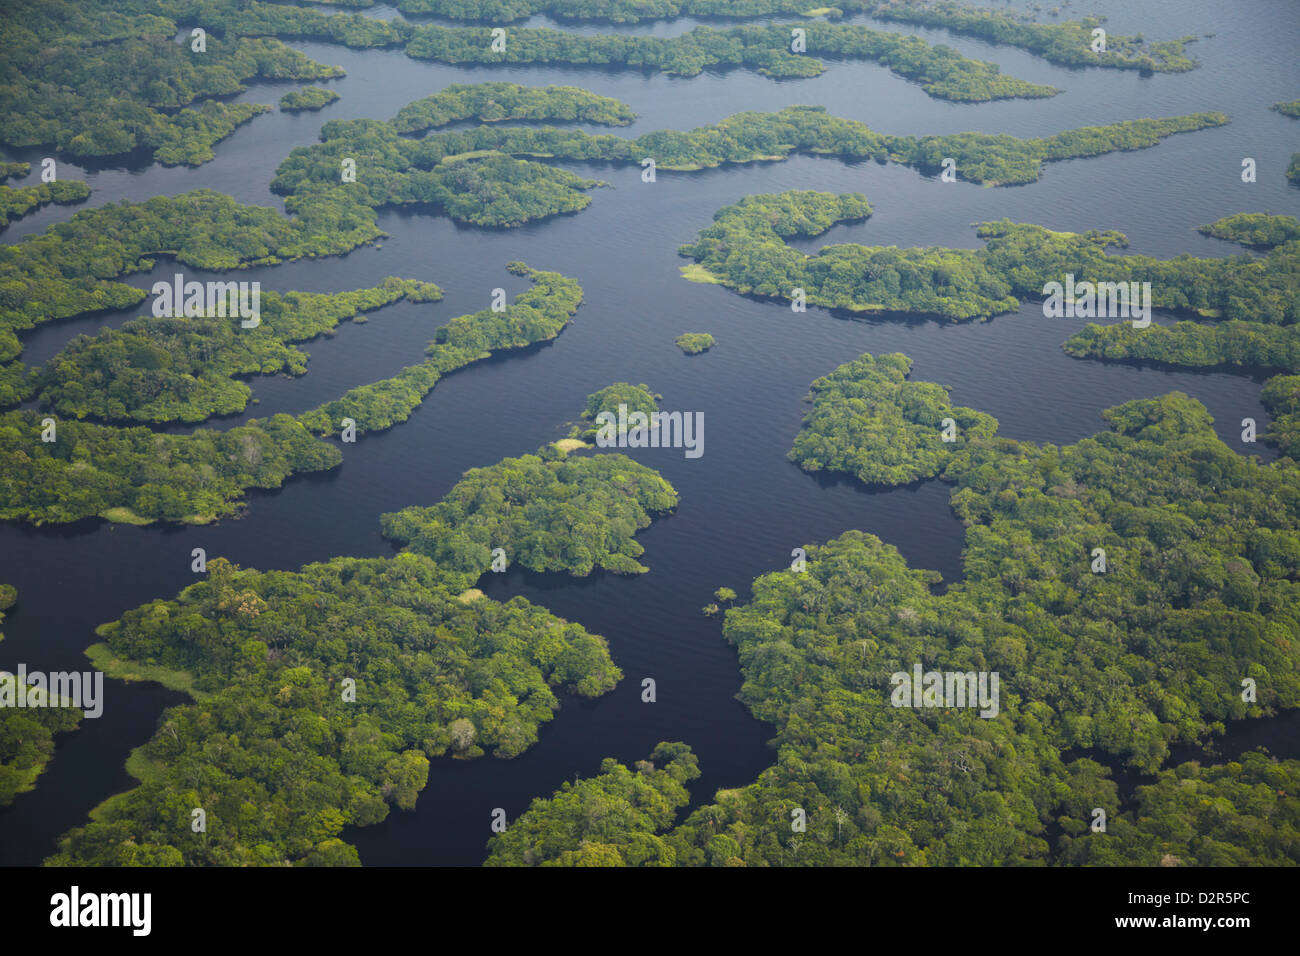 Law in the Amazon - American Forests